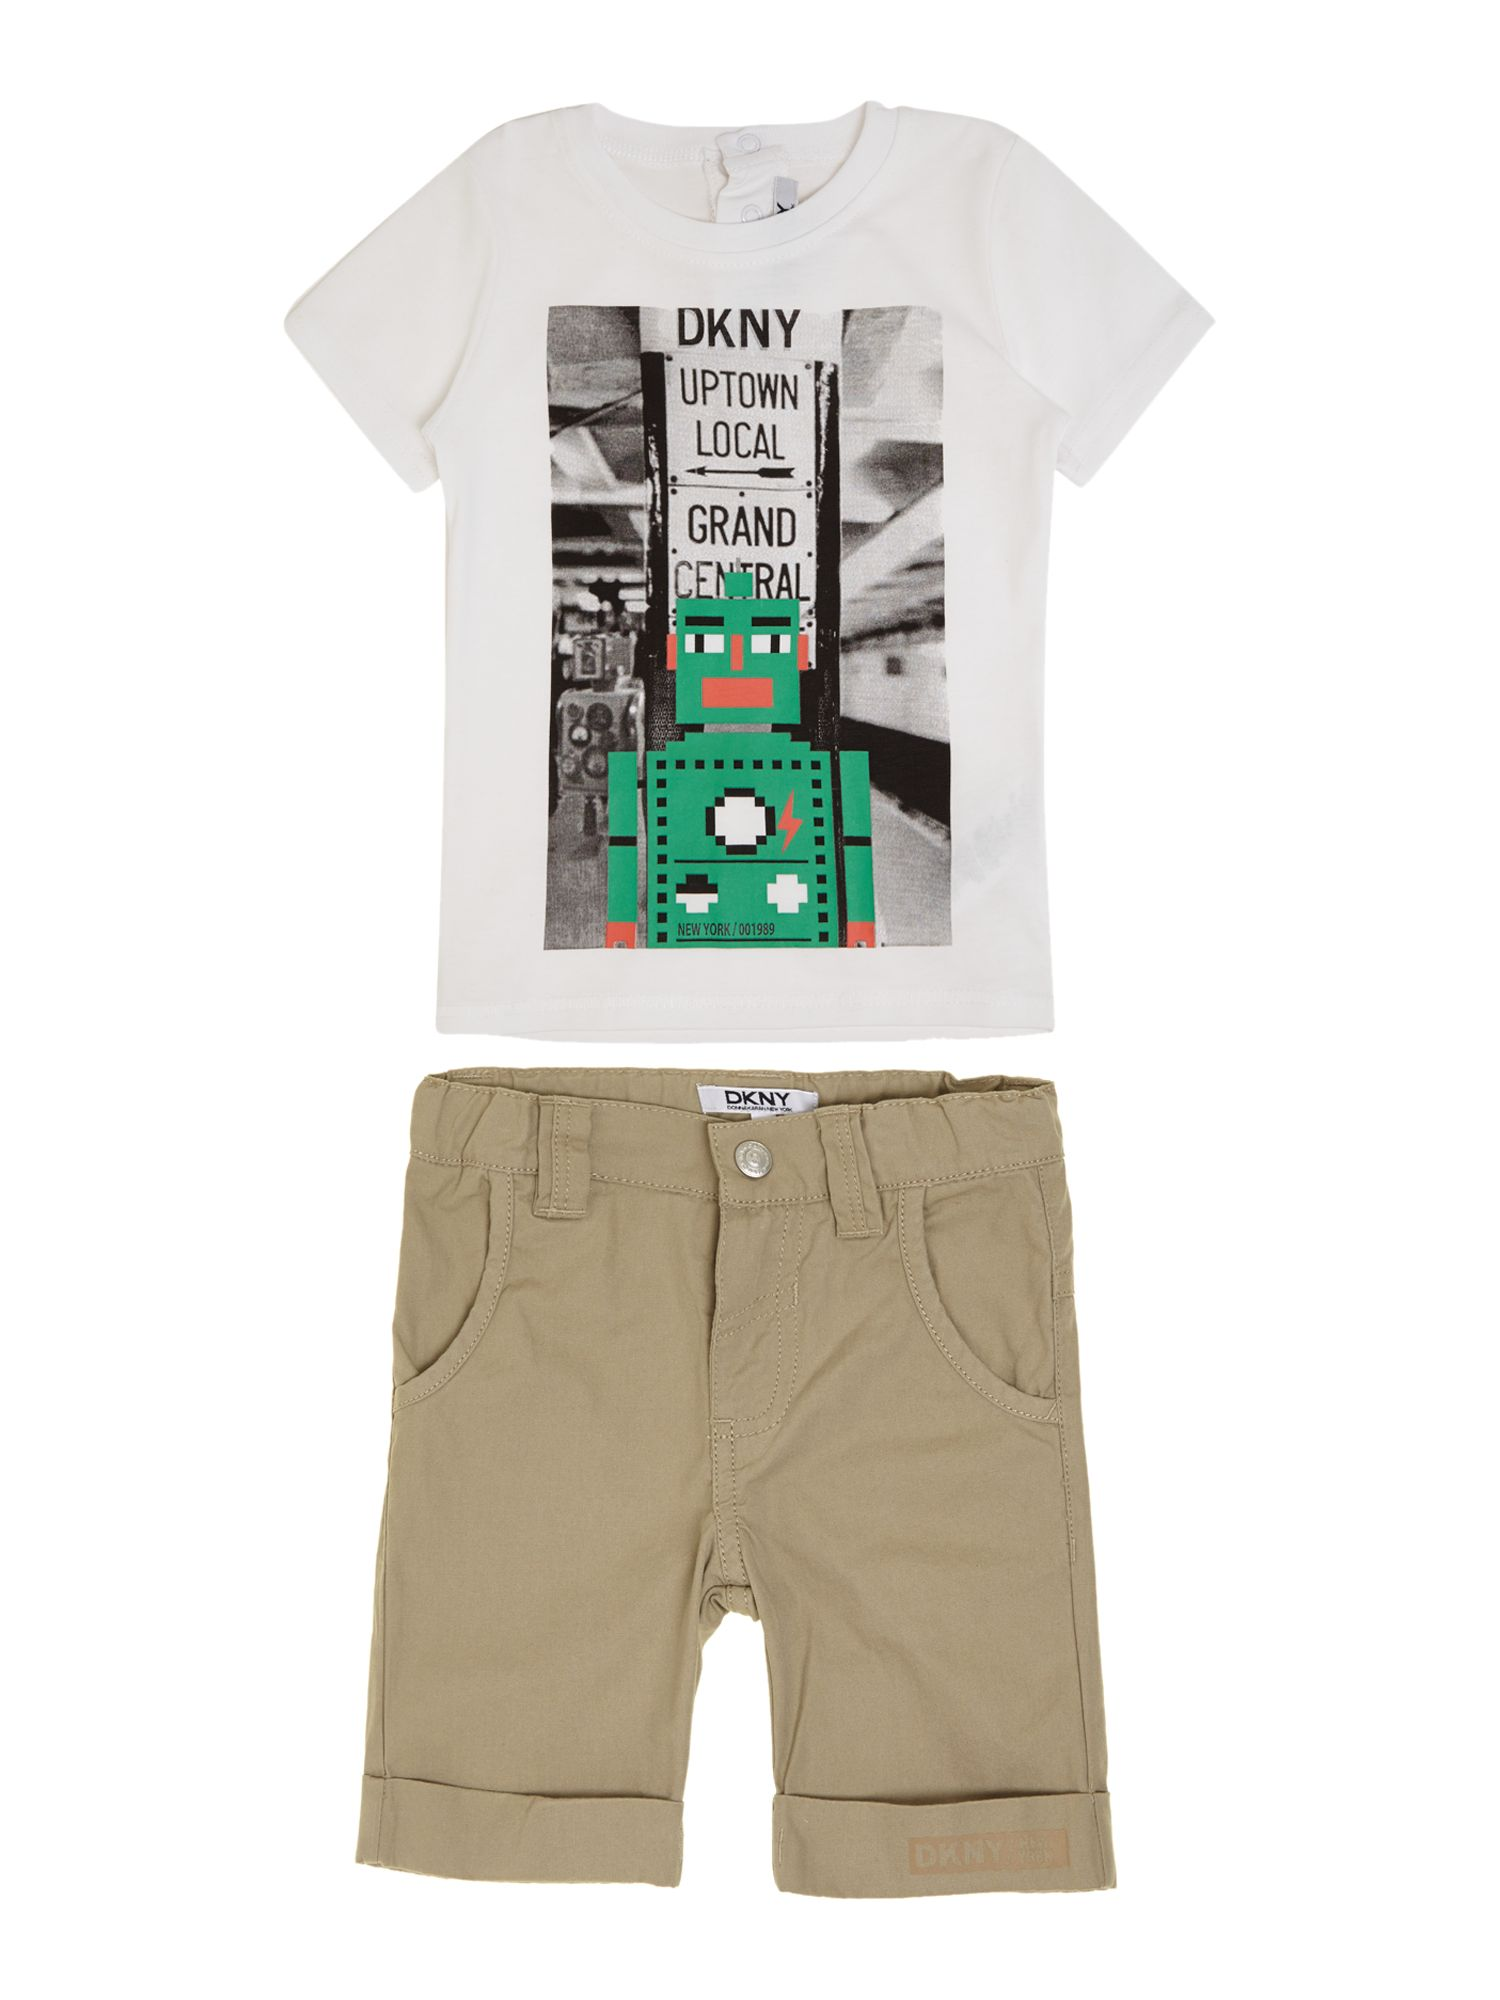 Boys set of t-shirt and bermuda shorts